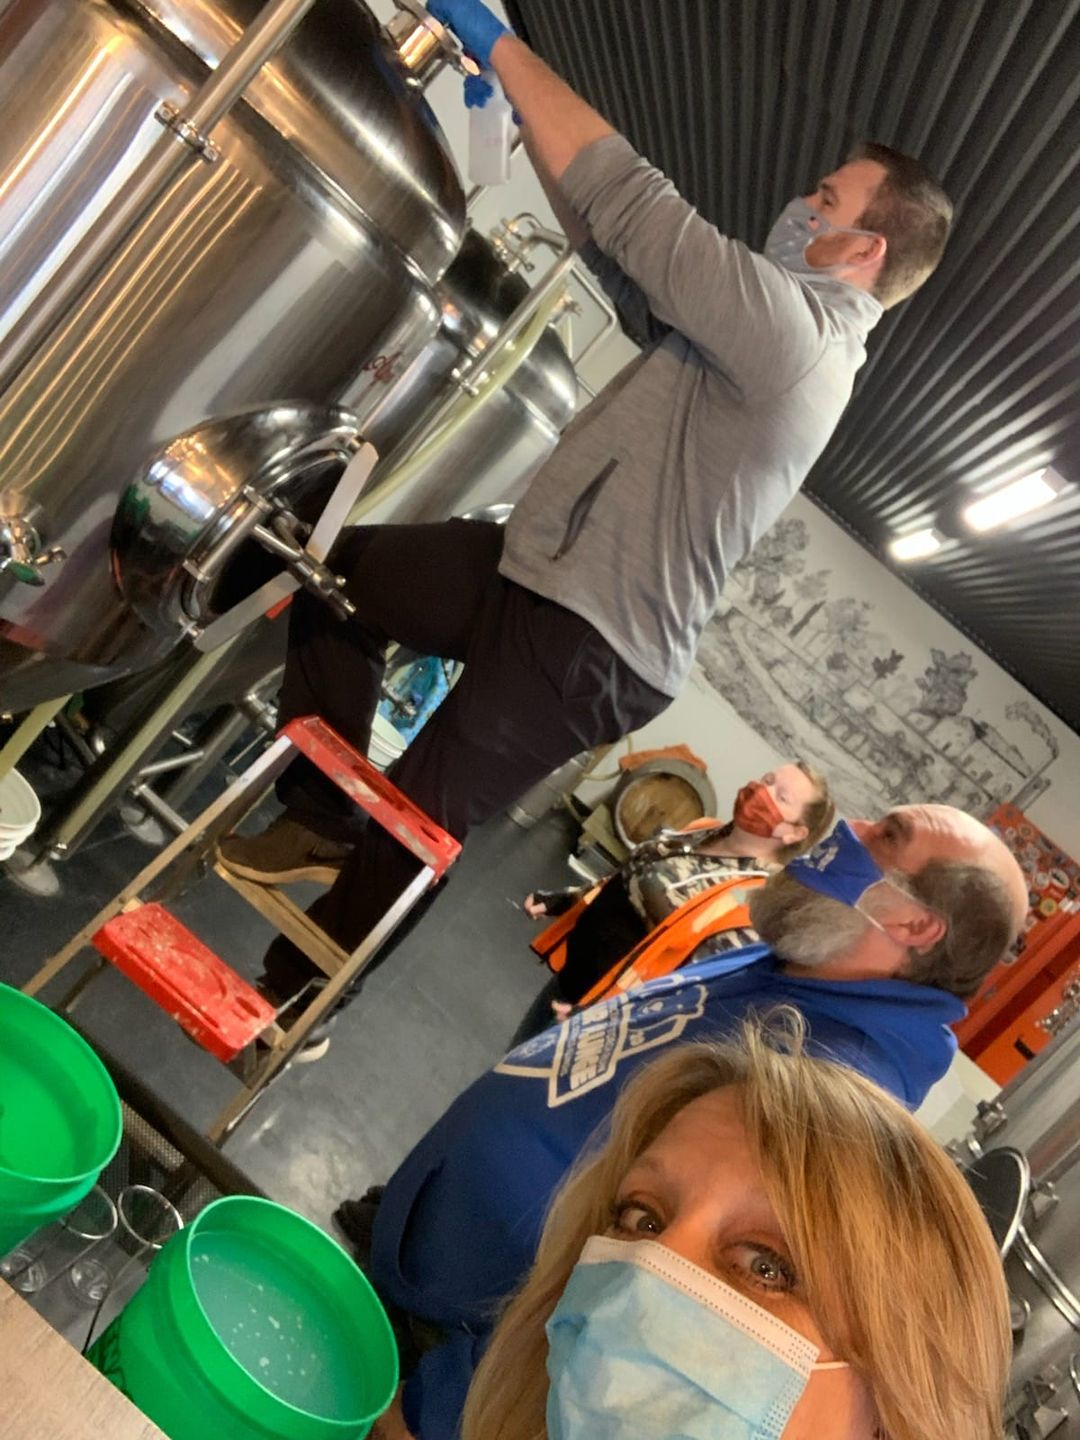 One brewer pouring ingredients into a vessel.  Some looking on, one looking at camera.